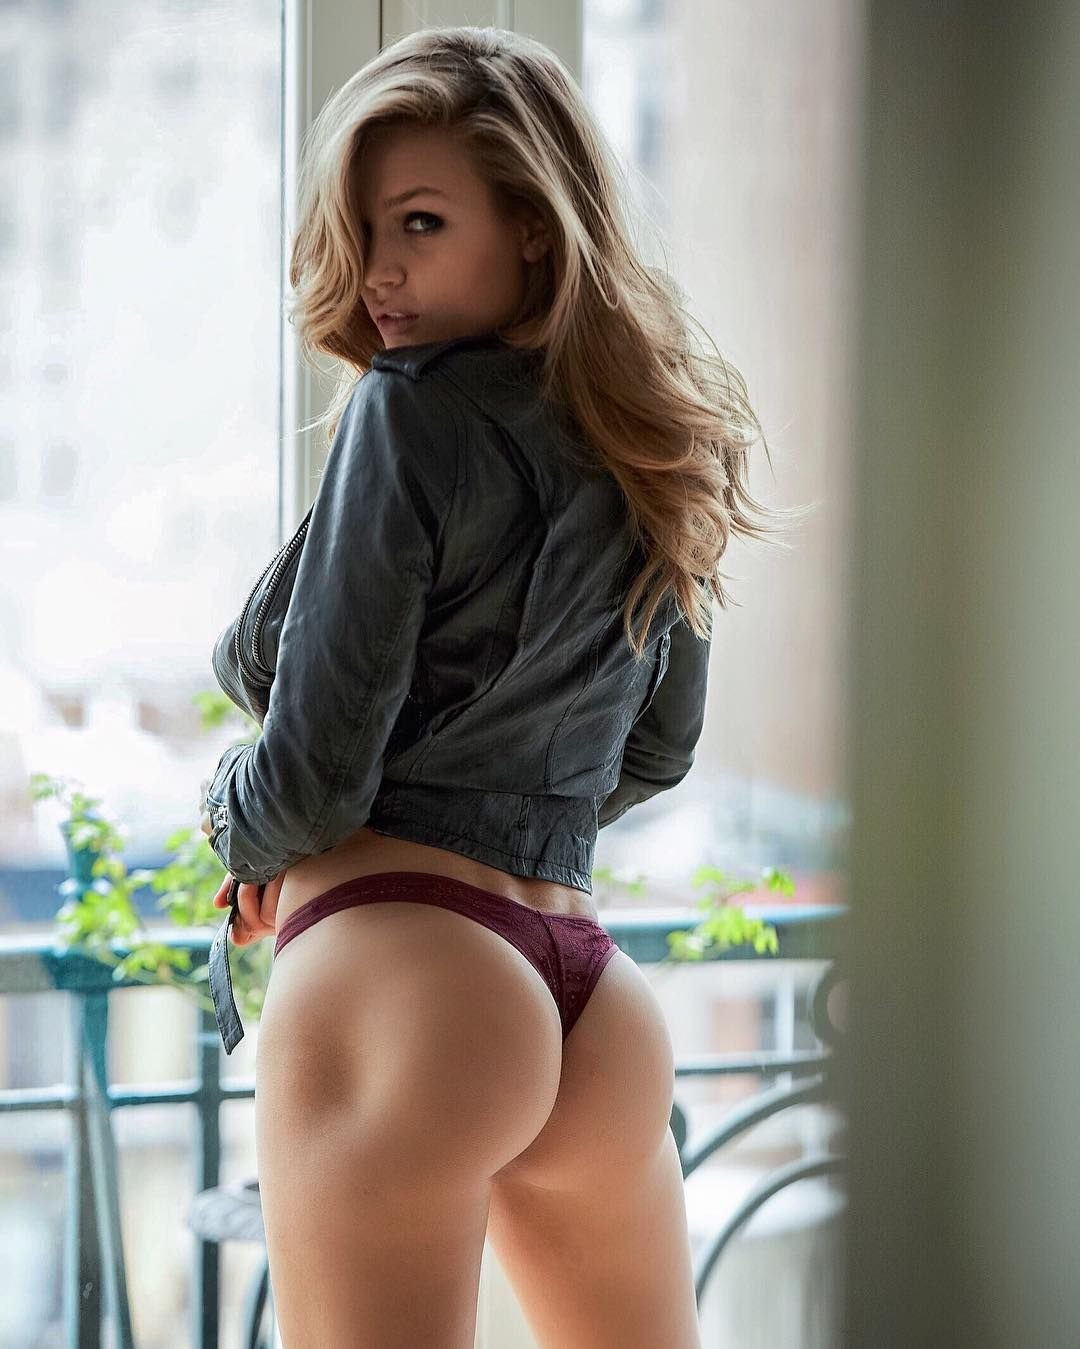 Ass Photo Of Josephine Sk...